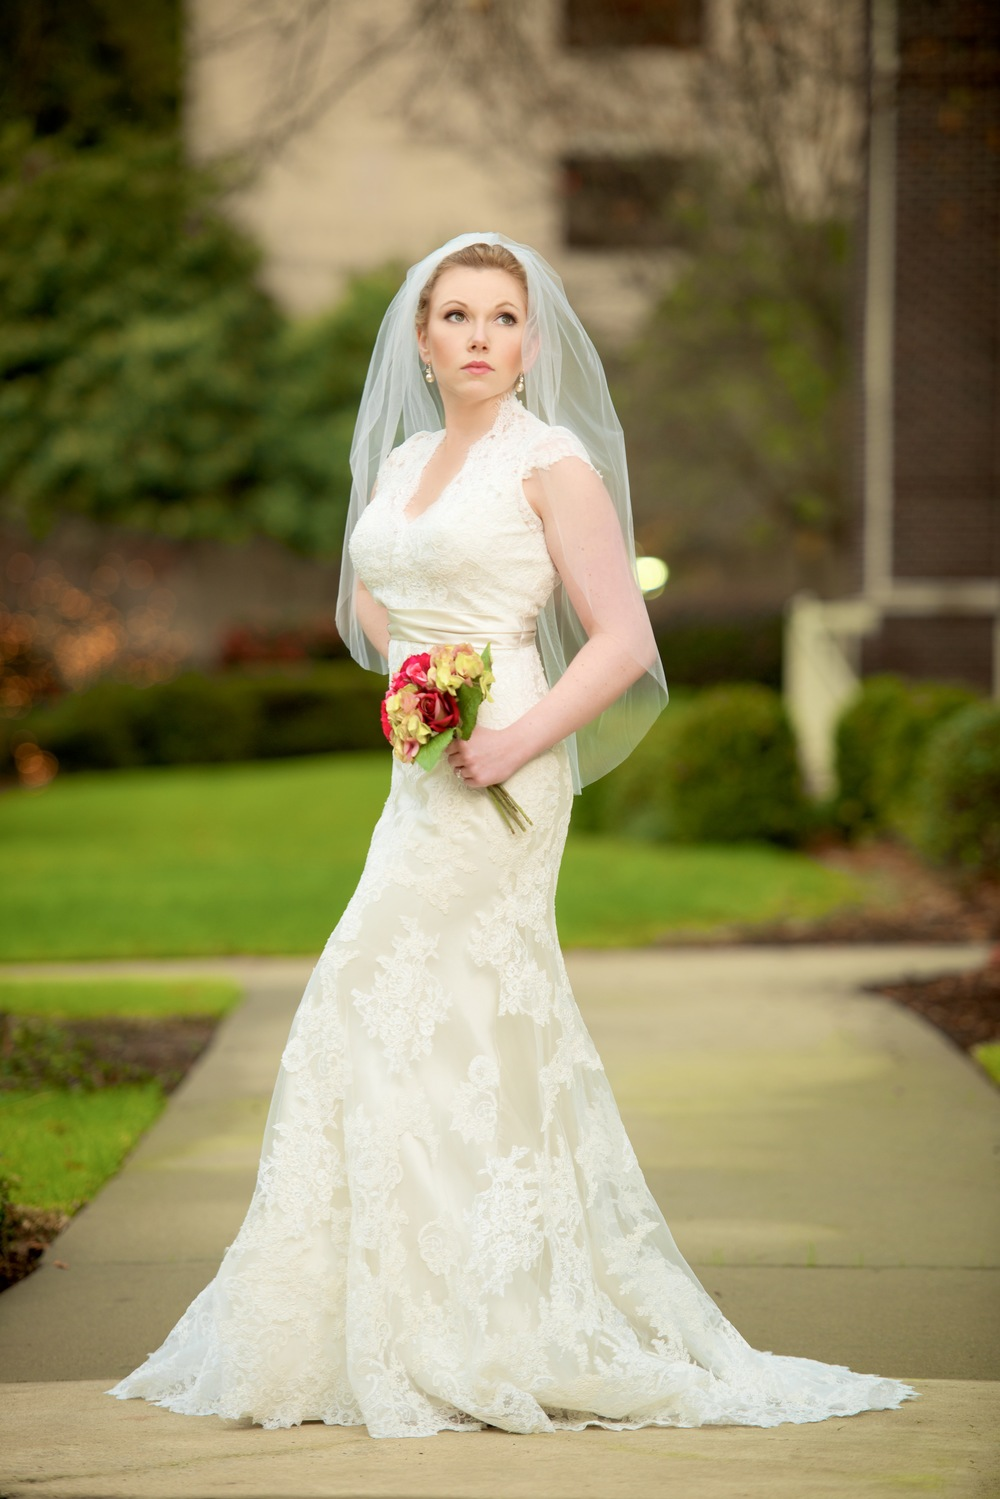 Bridal Portraits, Inn at USC, Bride, Wedding